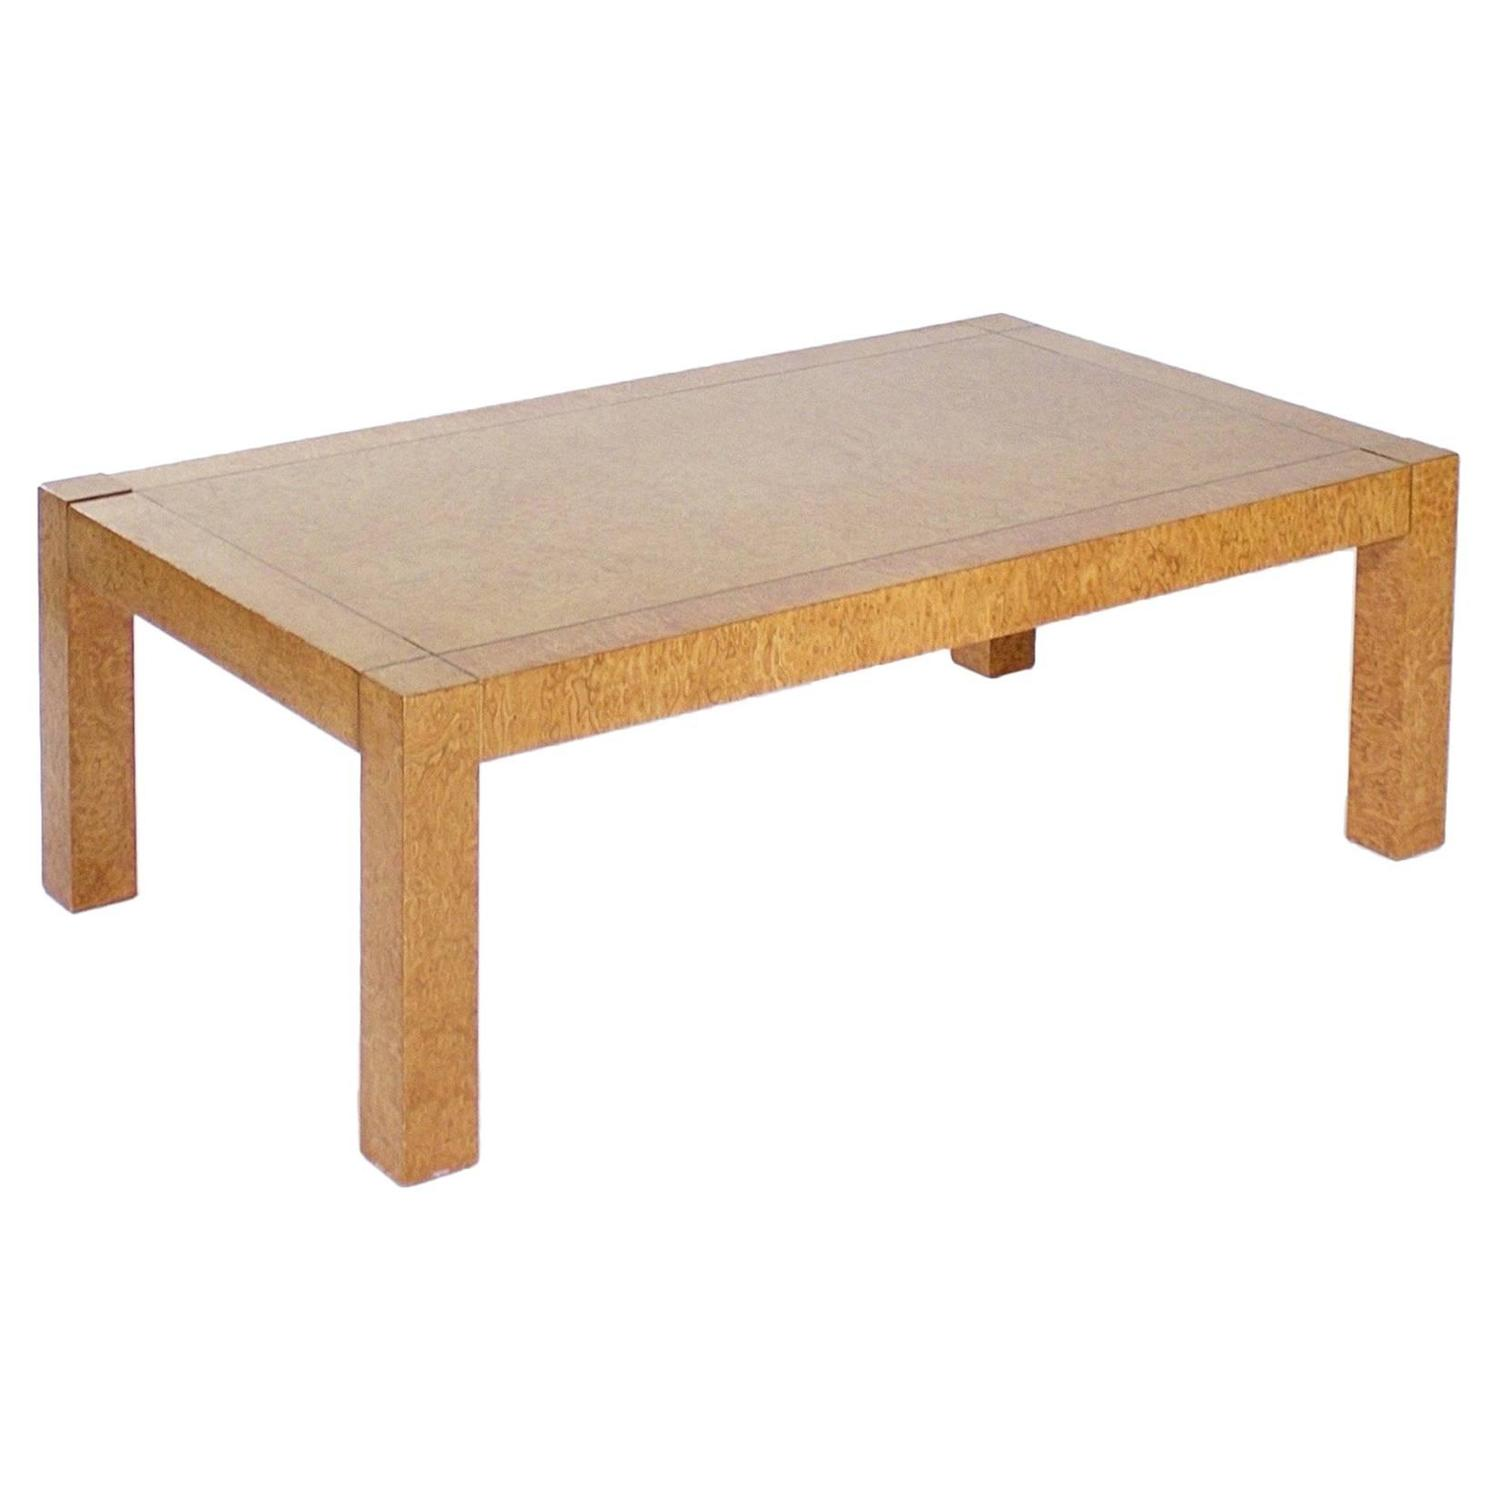 Rectangular Burr Elm Coffee Table by G Plan For Sale at 1stdibs